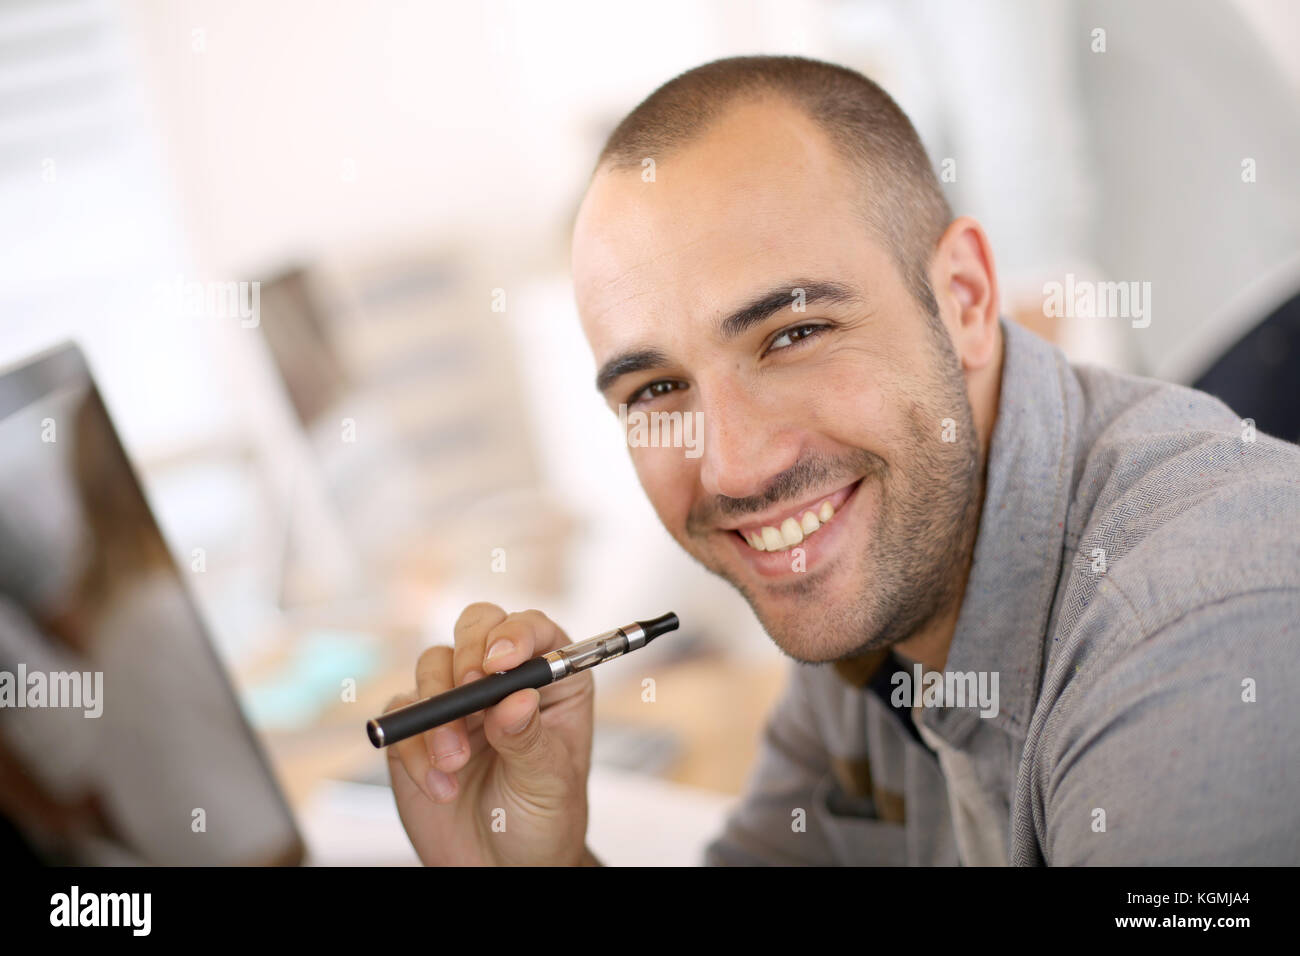 Portrait of cheerful guy smoking with e-cigarette - Stock Image